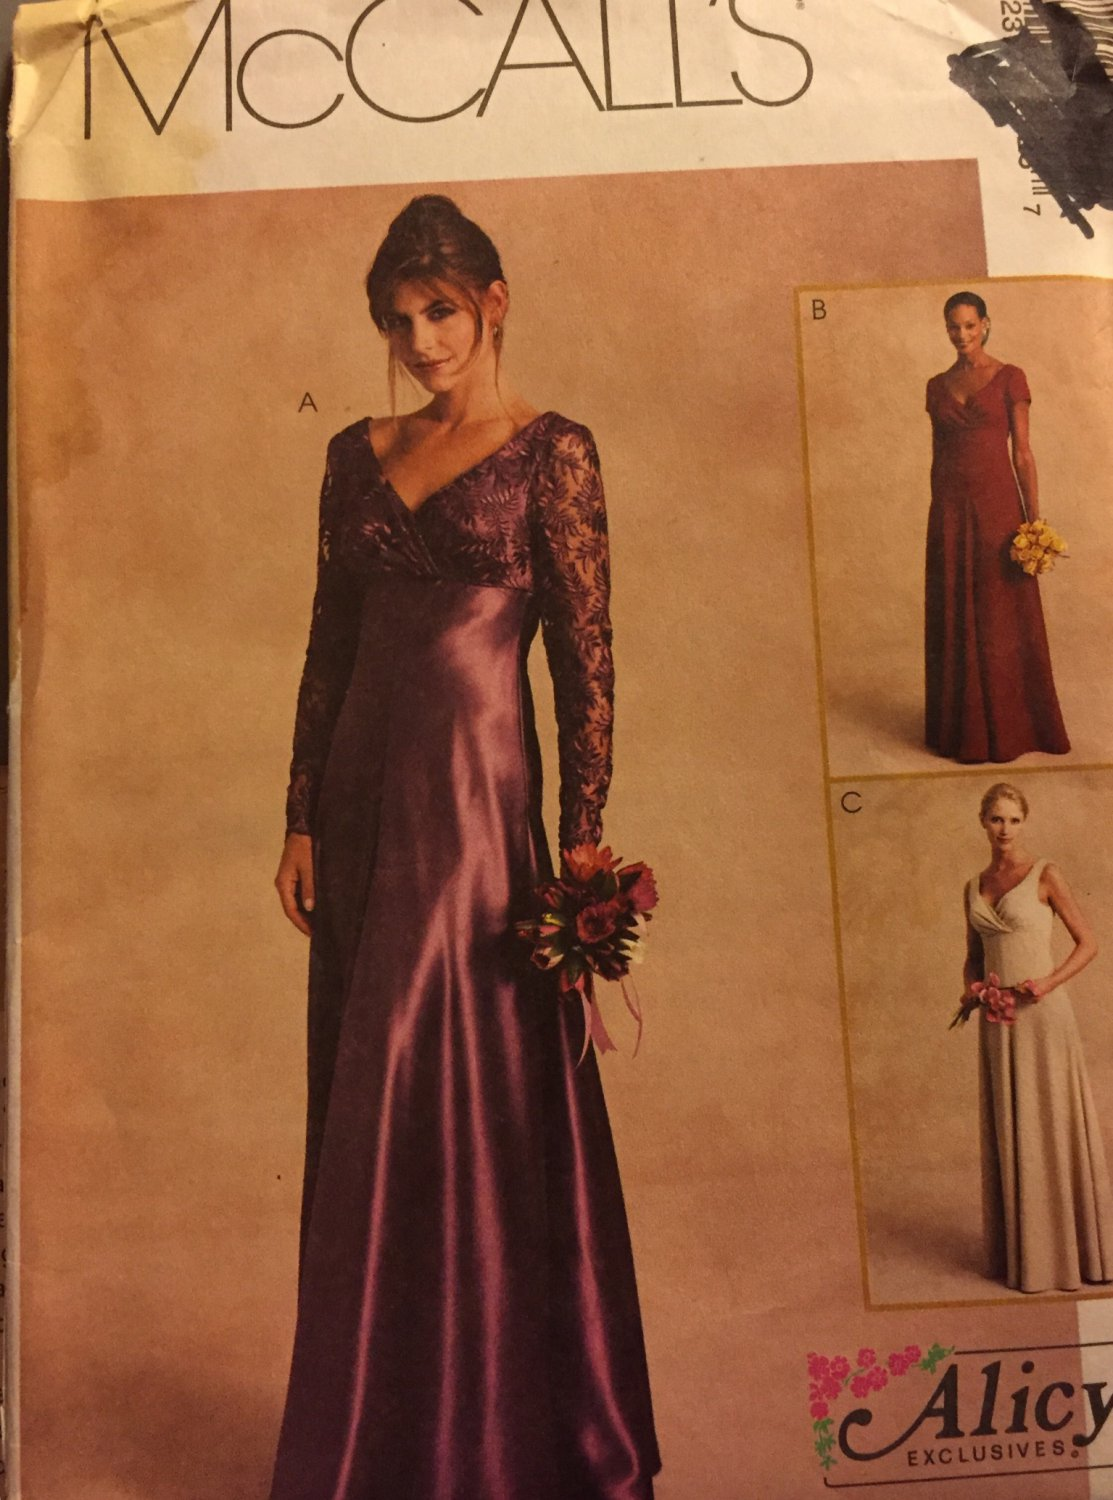 McCall's Sewing Pattern 2776 Misses' Self-Lined Special Occasion Dress and Scarf, Size 10 12 14